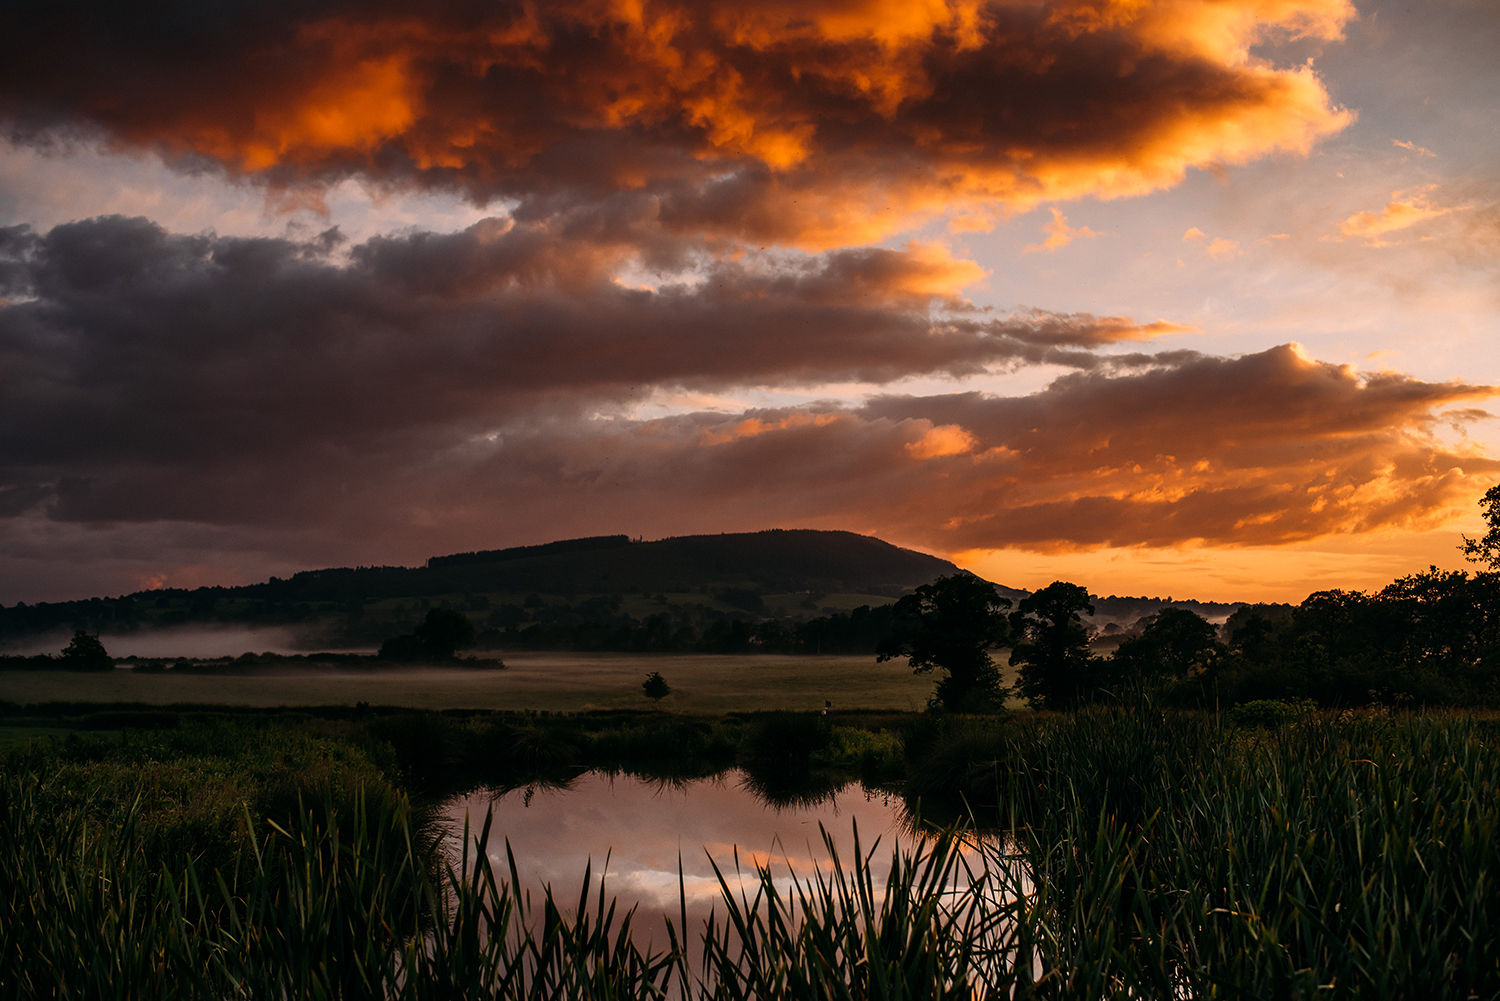 sun sets over the water and hills